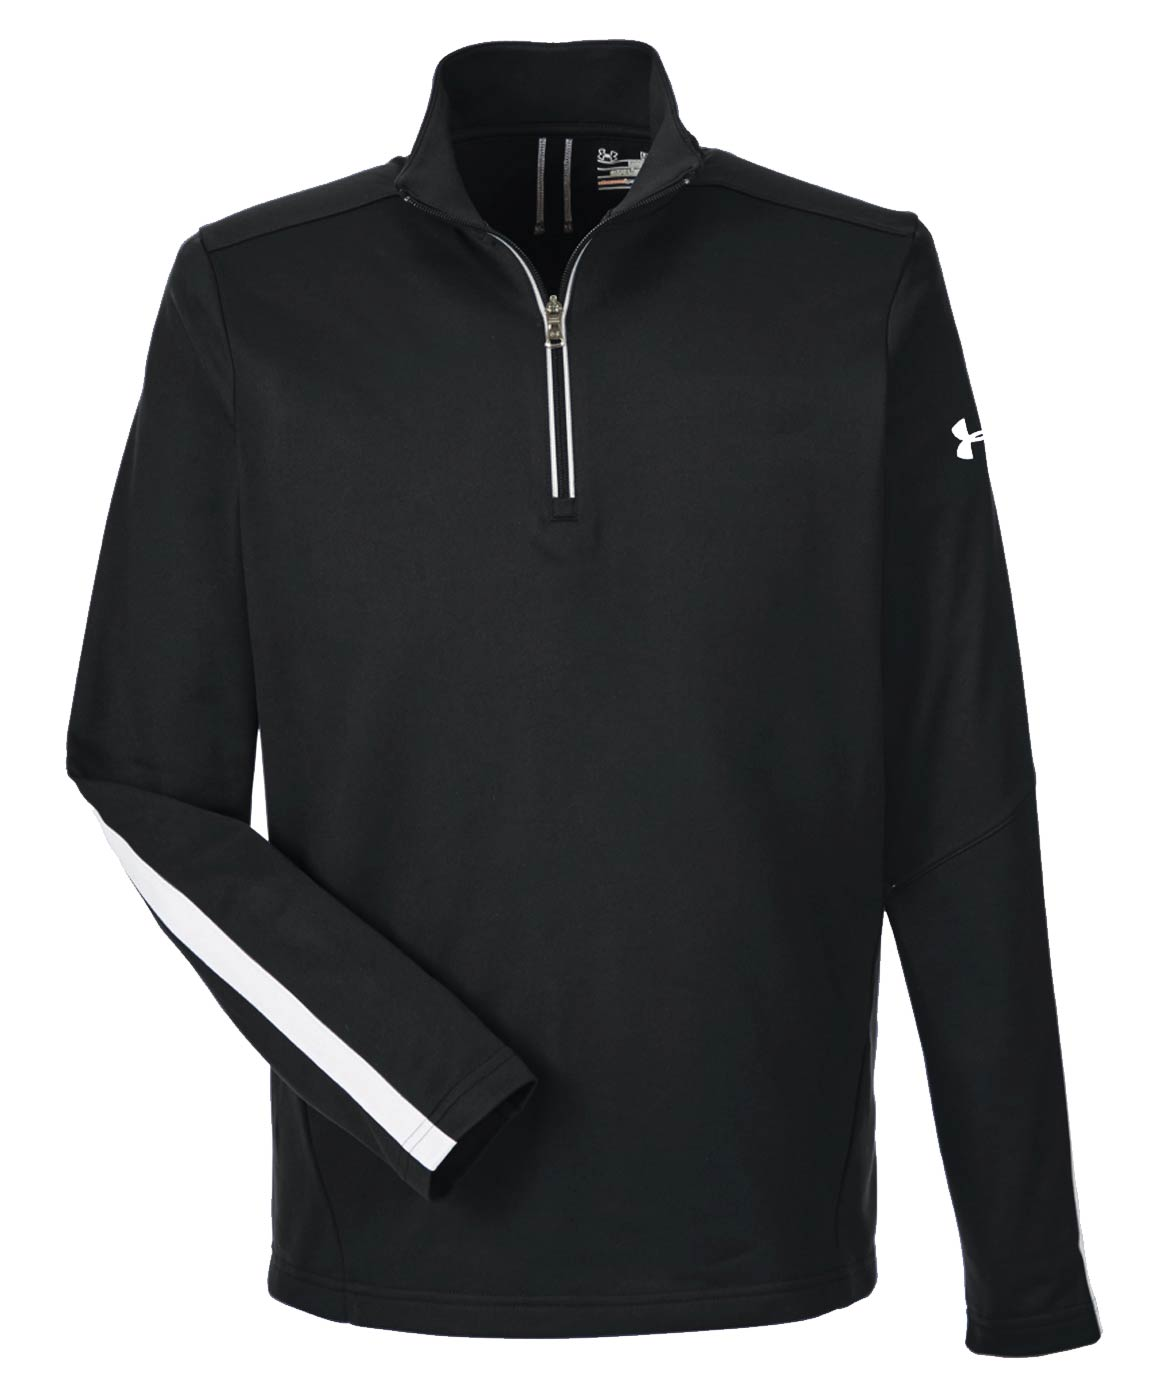 Under Armour Mens Qualifier 1/4 Zip